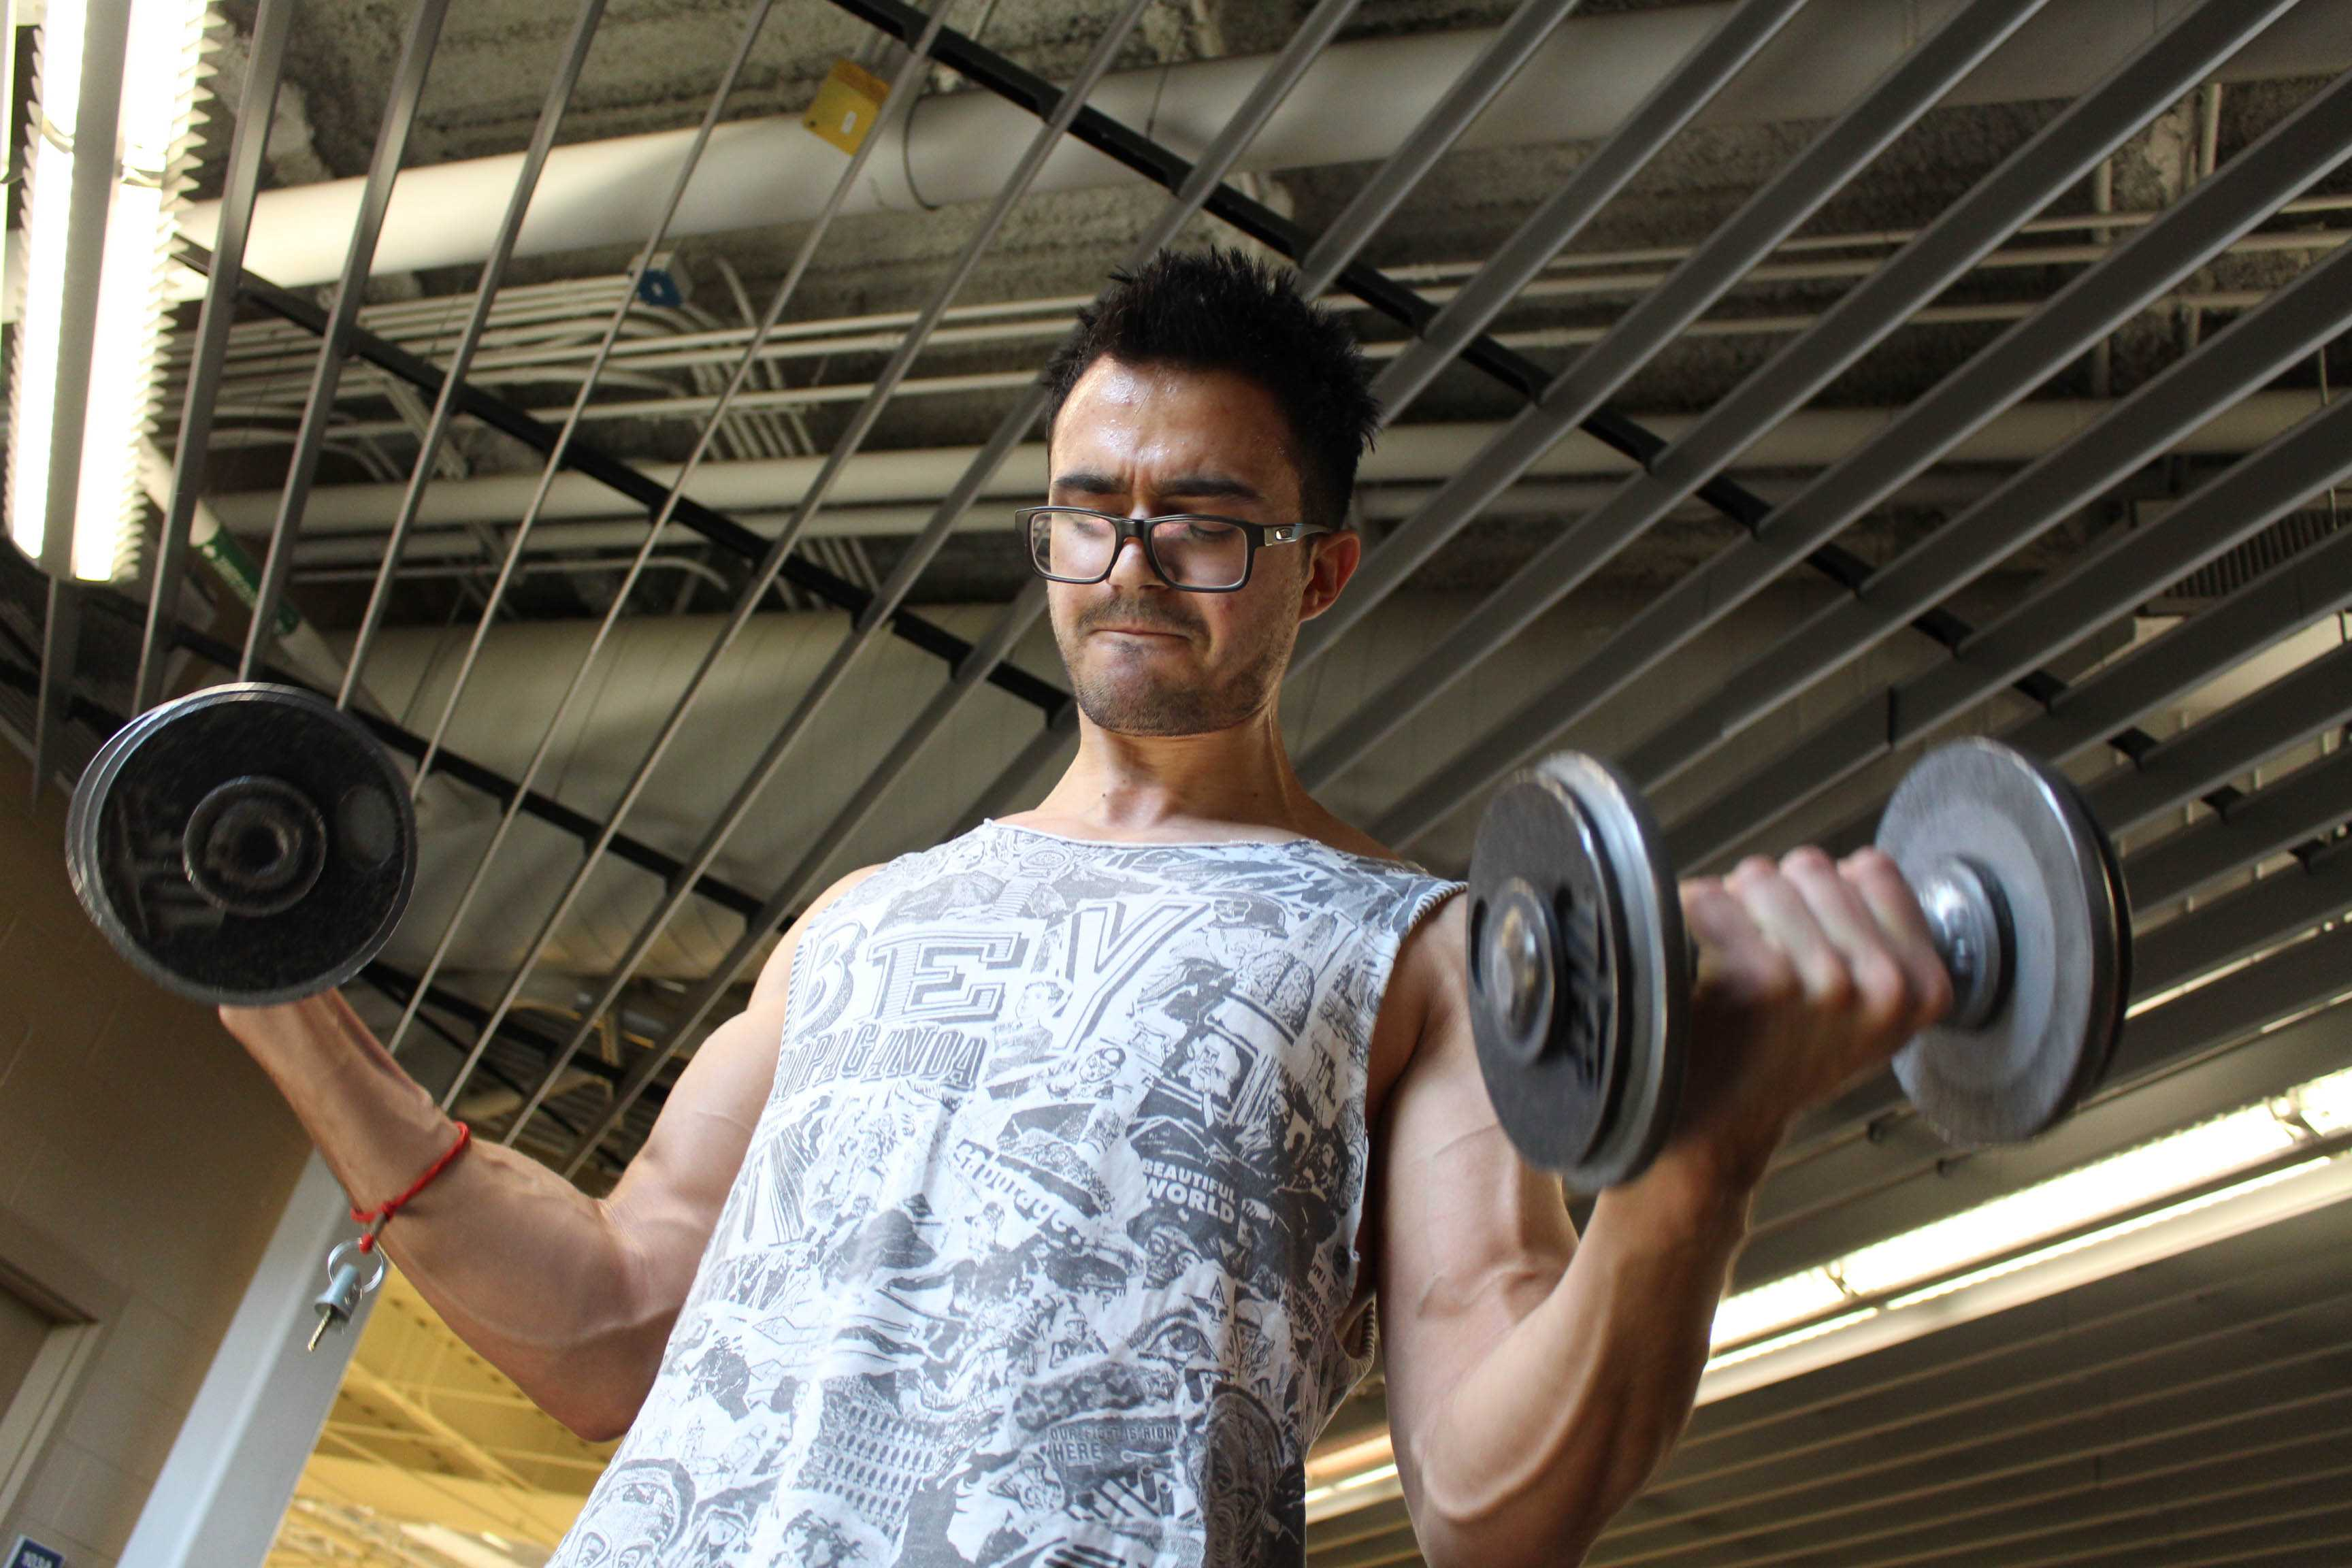 Senior music theory and composition major, Roberto Loya lifts weights at the UTEP recreation center